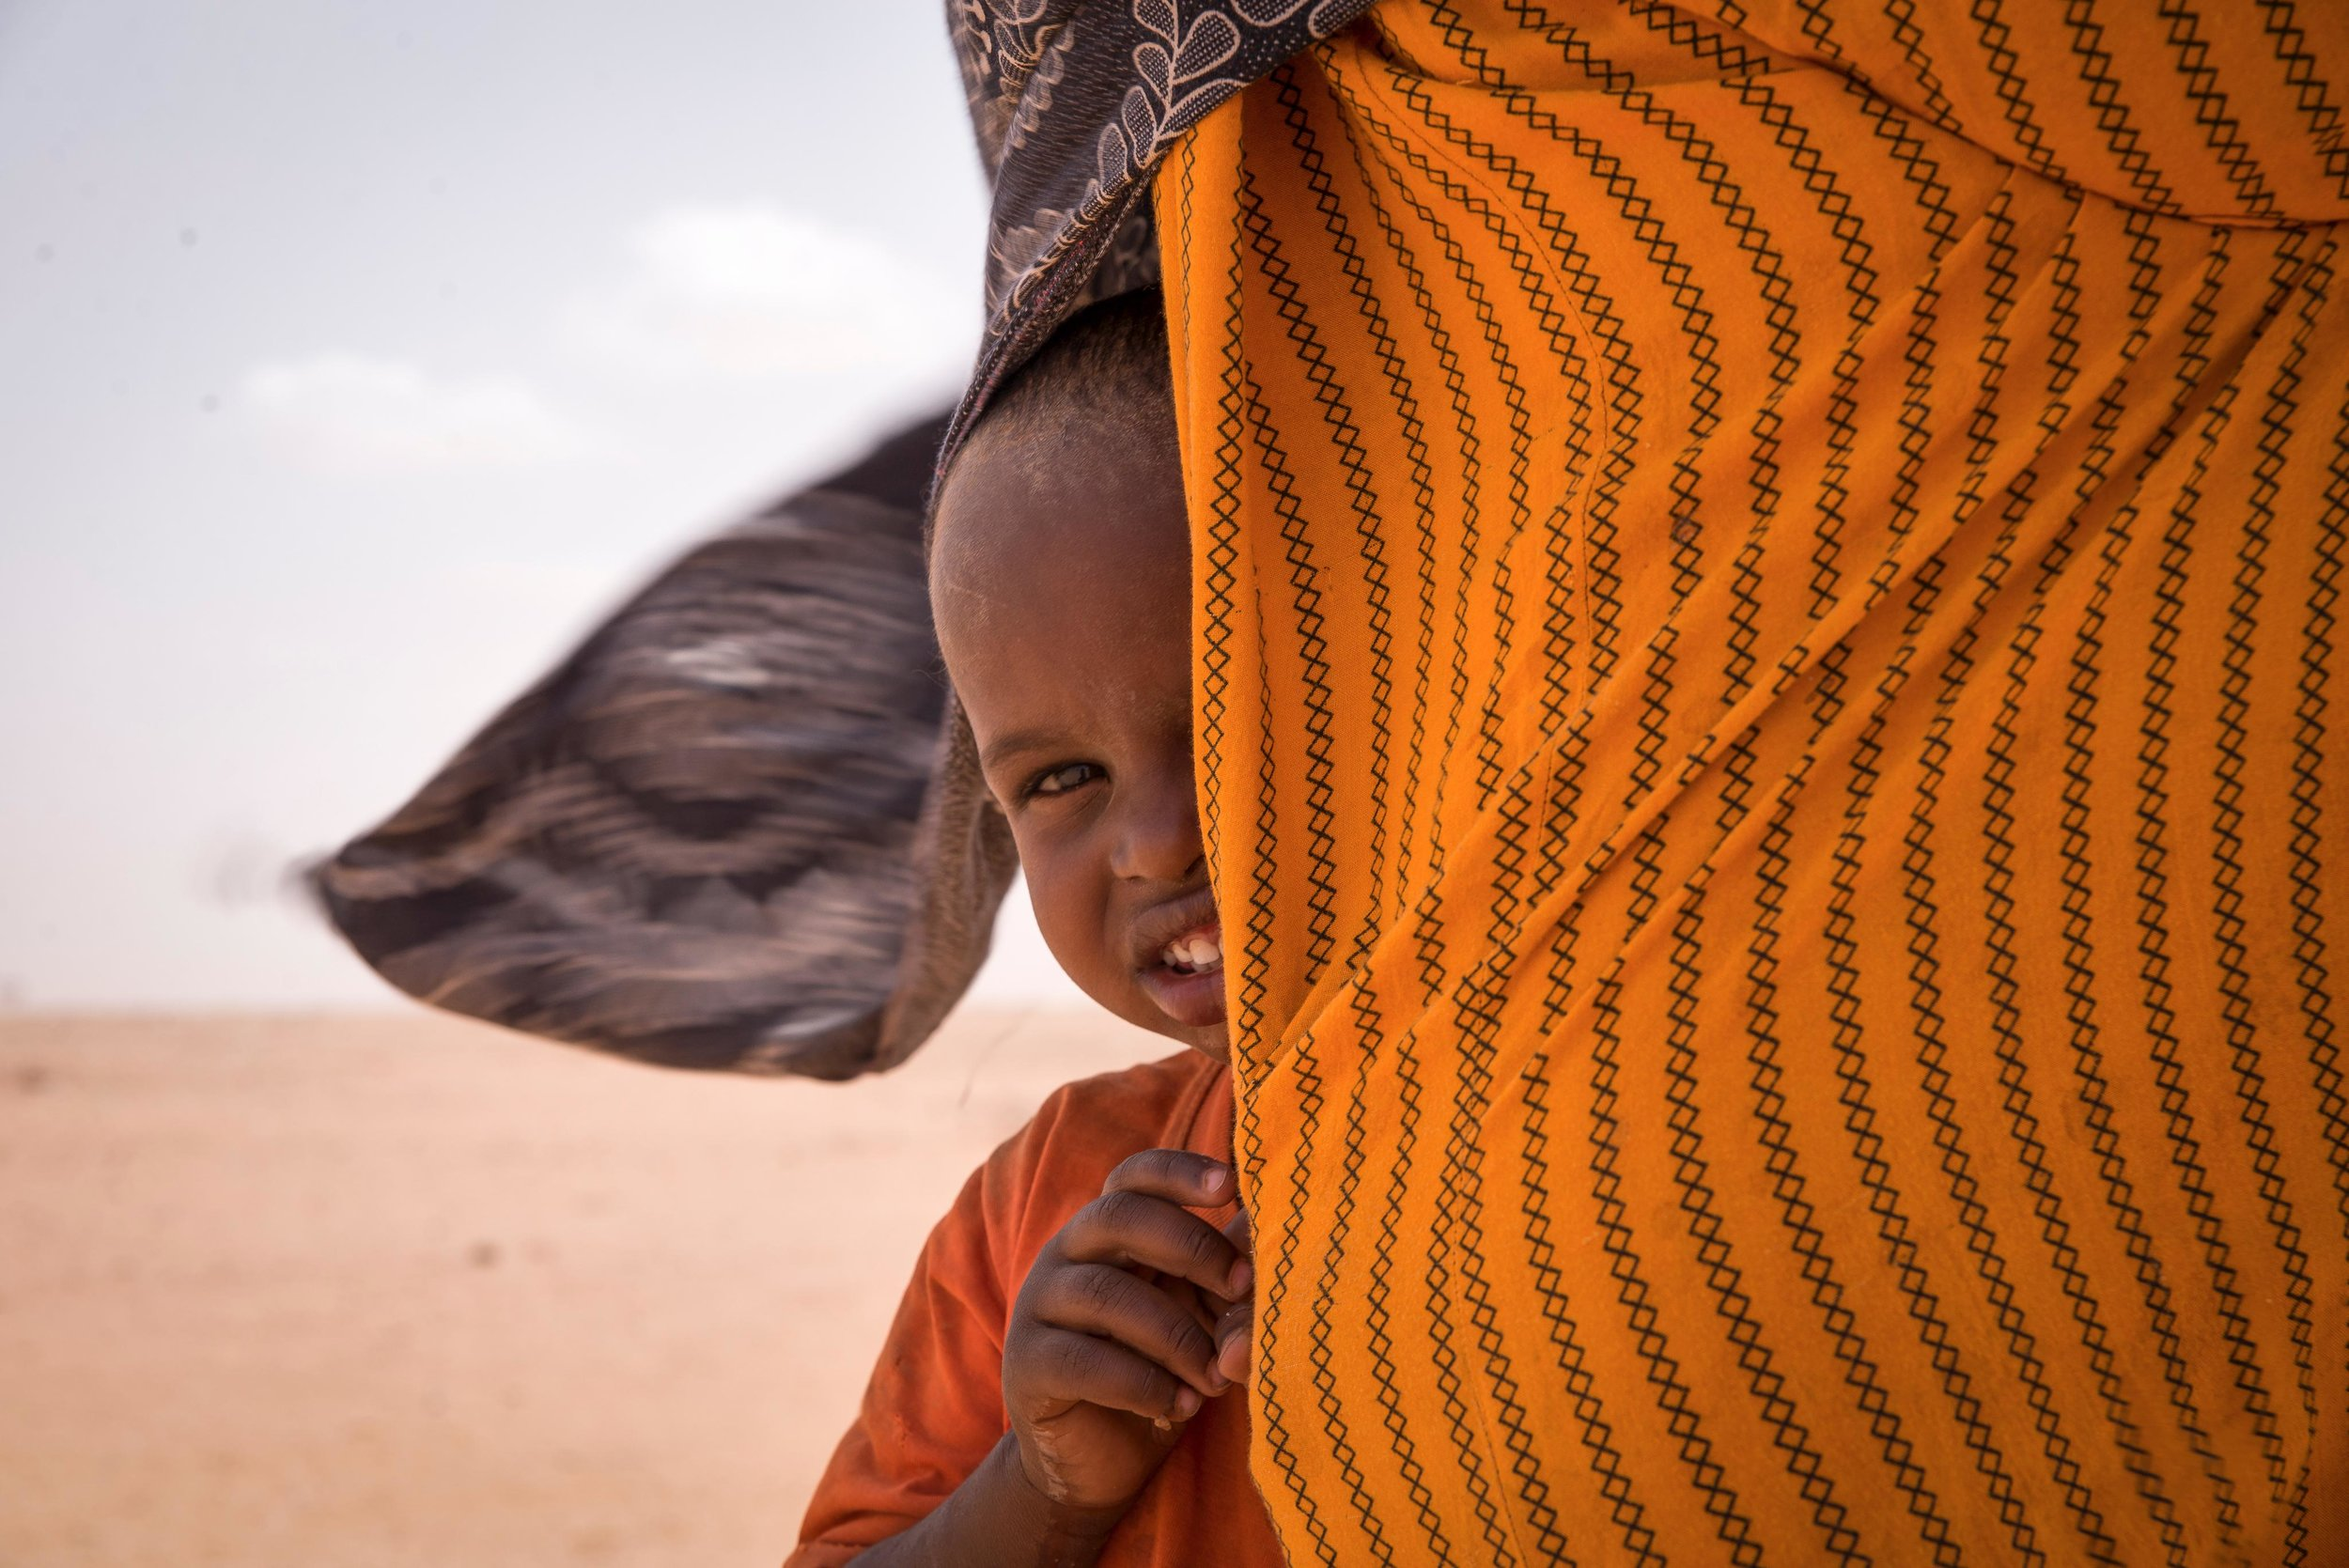 A boy hides behind his mother's dress during a sandstorm in a remote village in Wajir County, Northern Kenya.